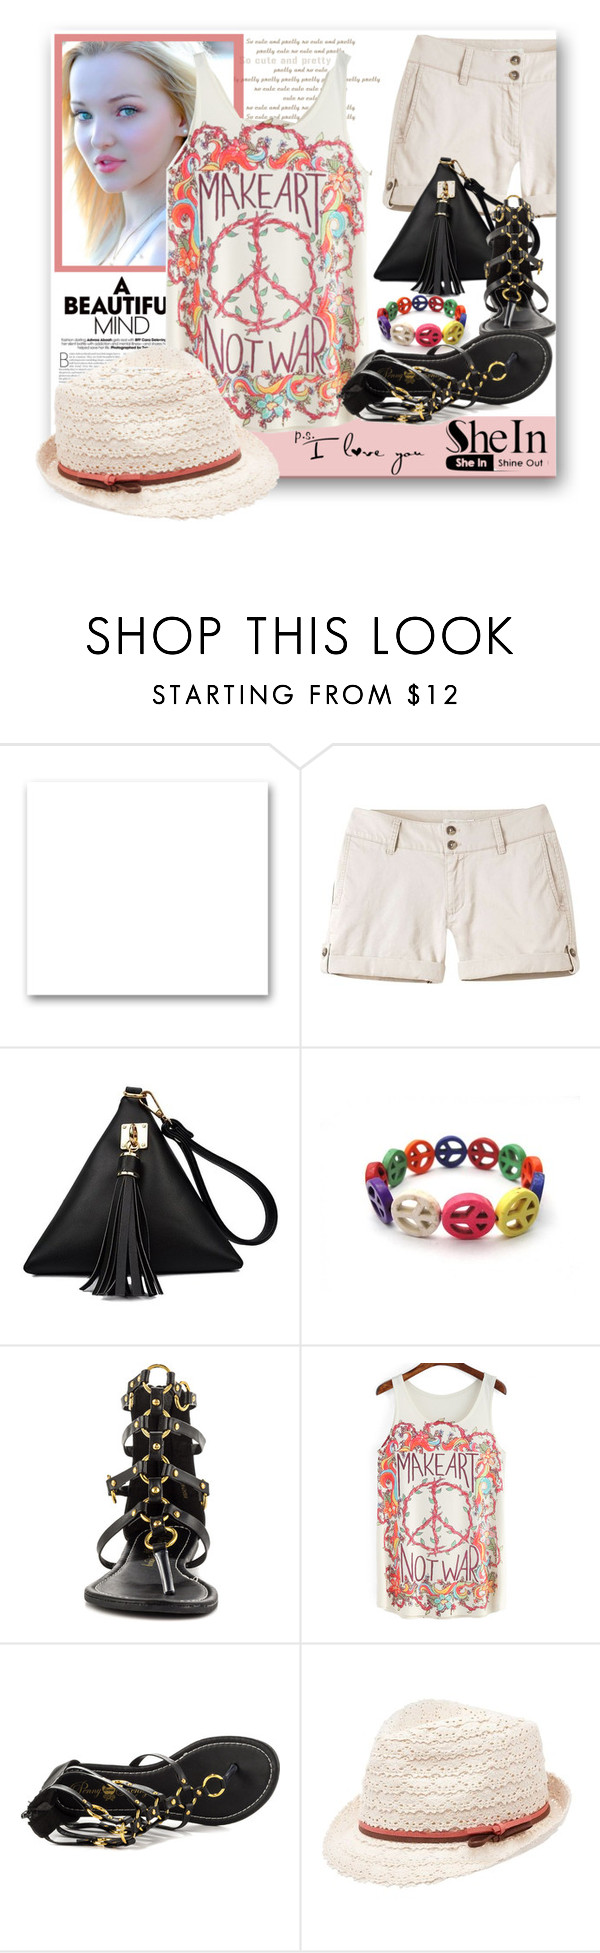 """""""SheIn-Multicolor Floral Top"""" by samketina ❤ liked on Polyvore featuring St. John, Mountain Khakis, Penny Loves Kenny and Charlotte Russe"""